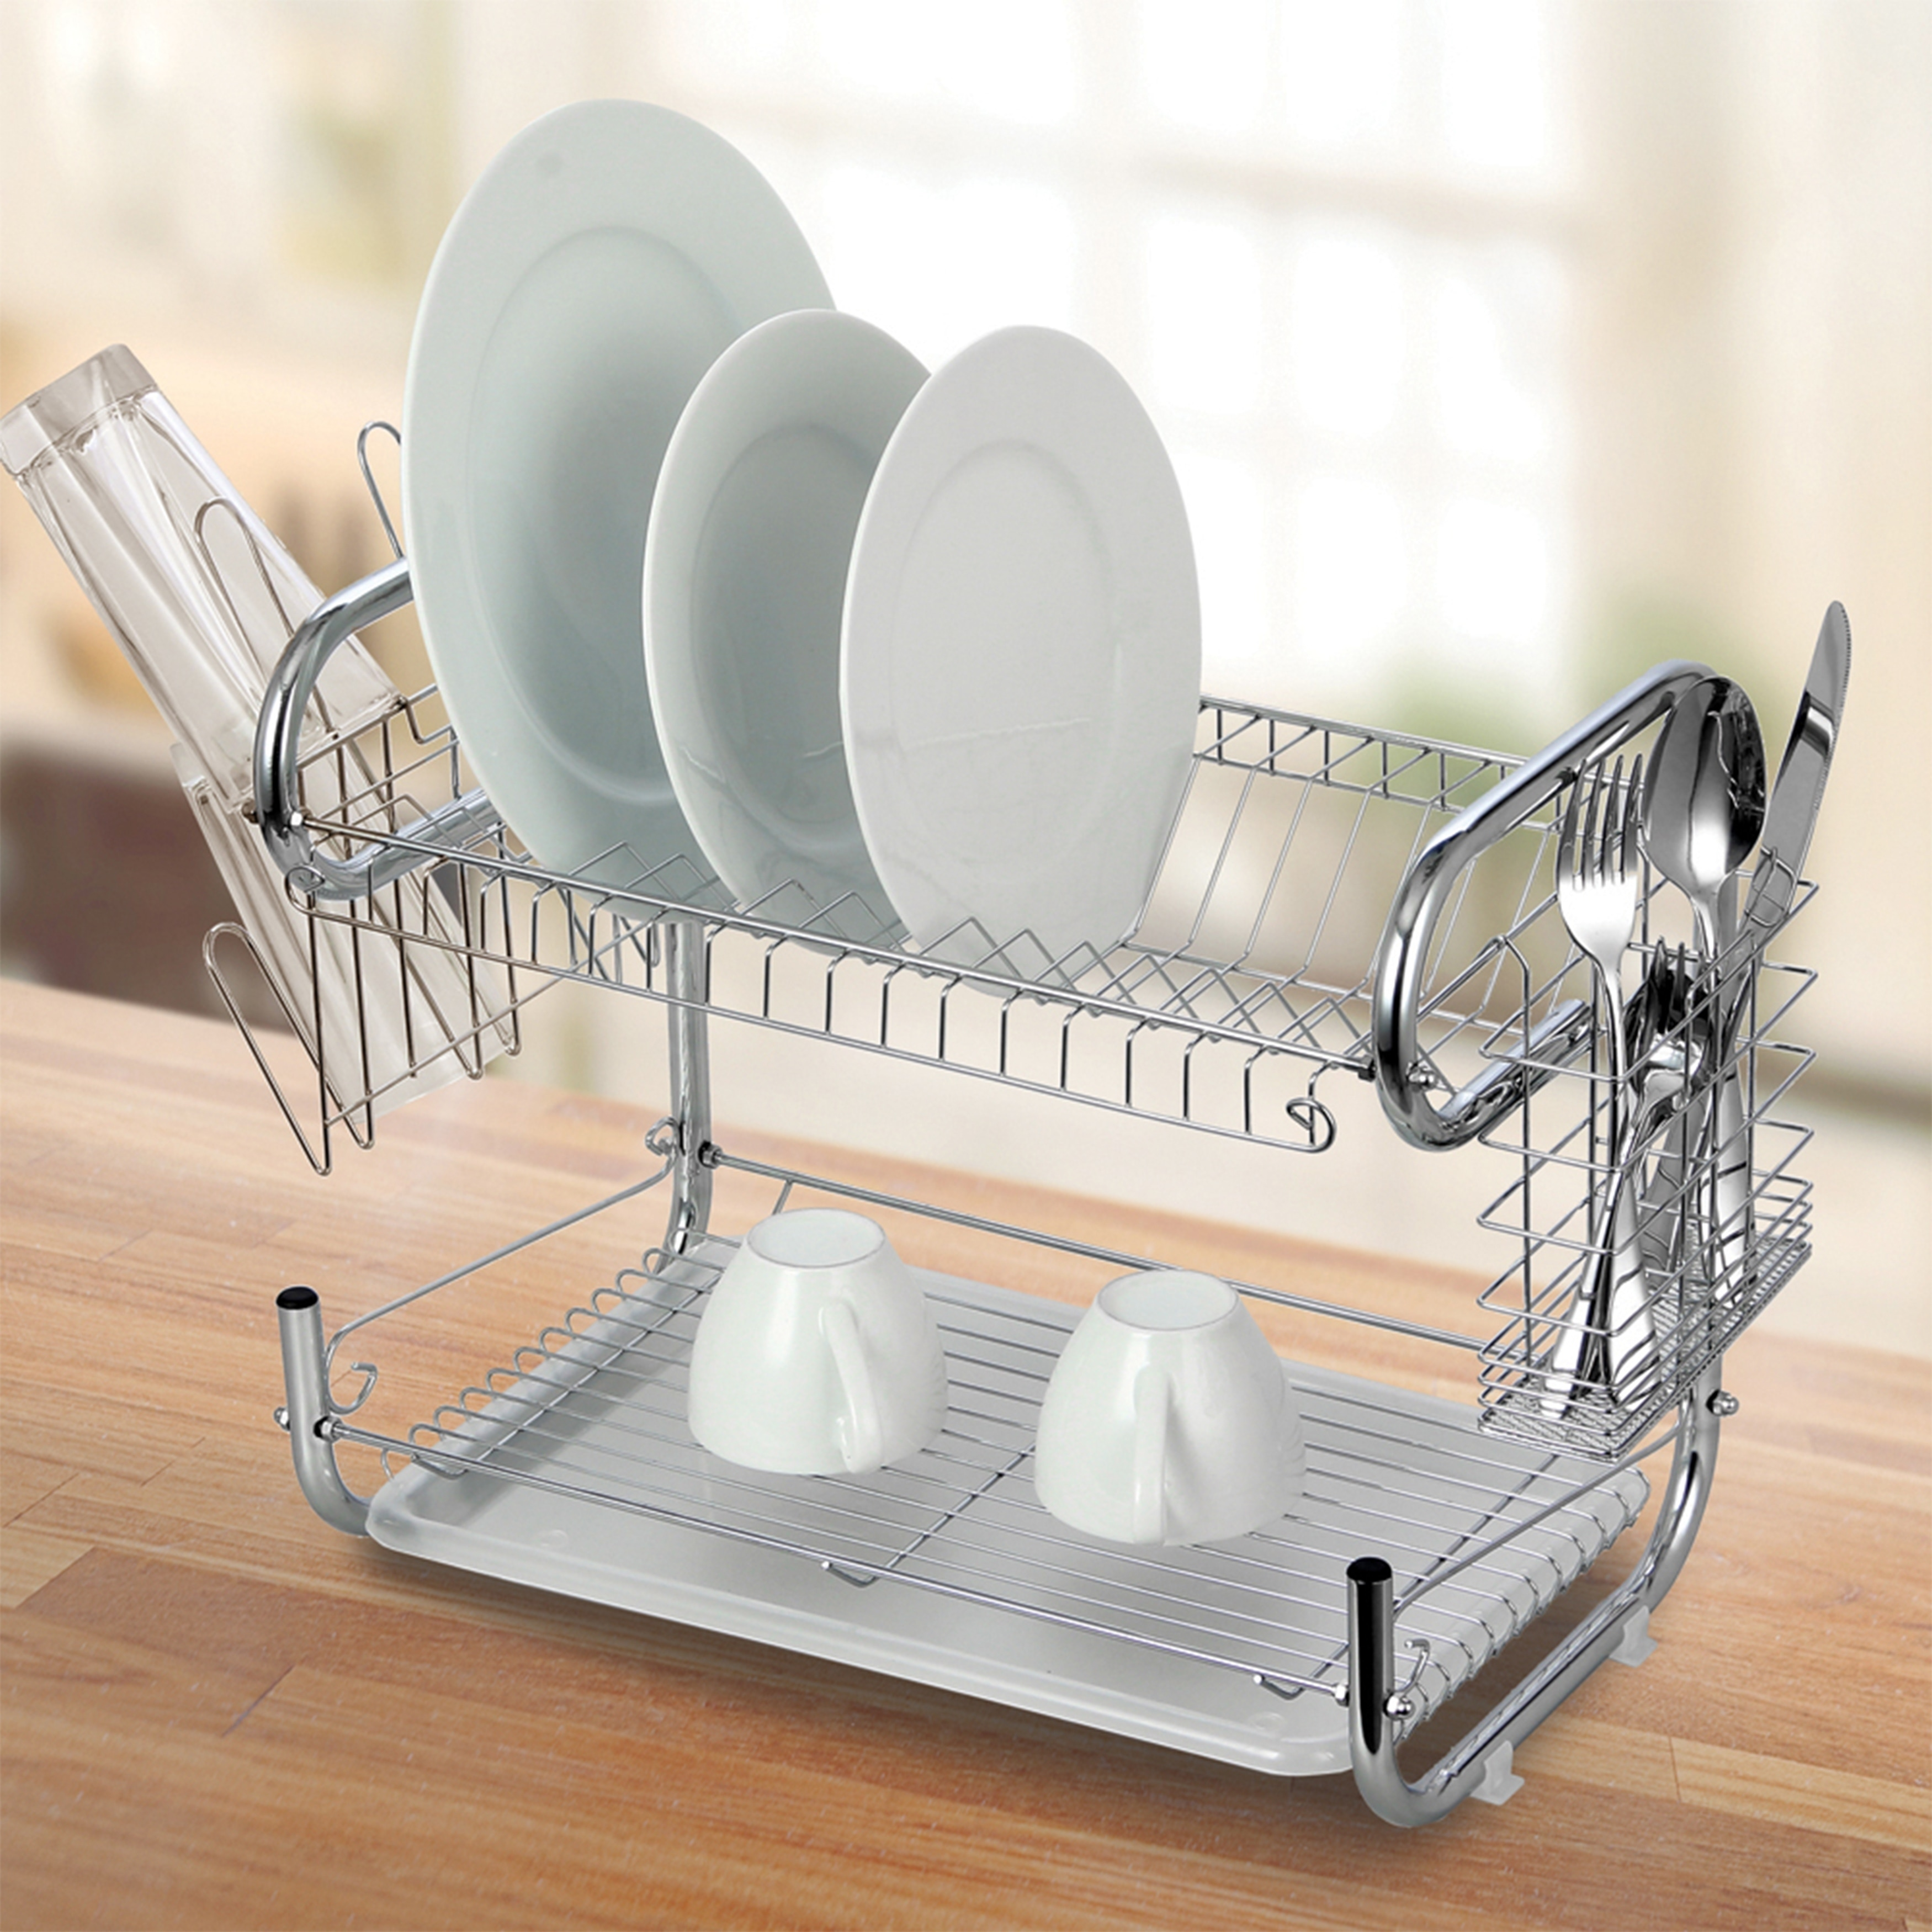 Modern Kitchen Chrome Plated 2 Tier Dish Drying Rack and Draining